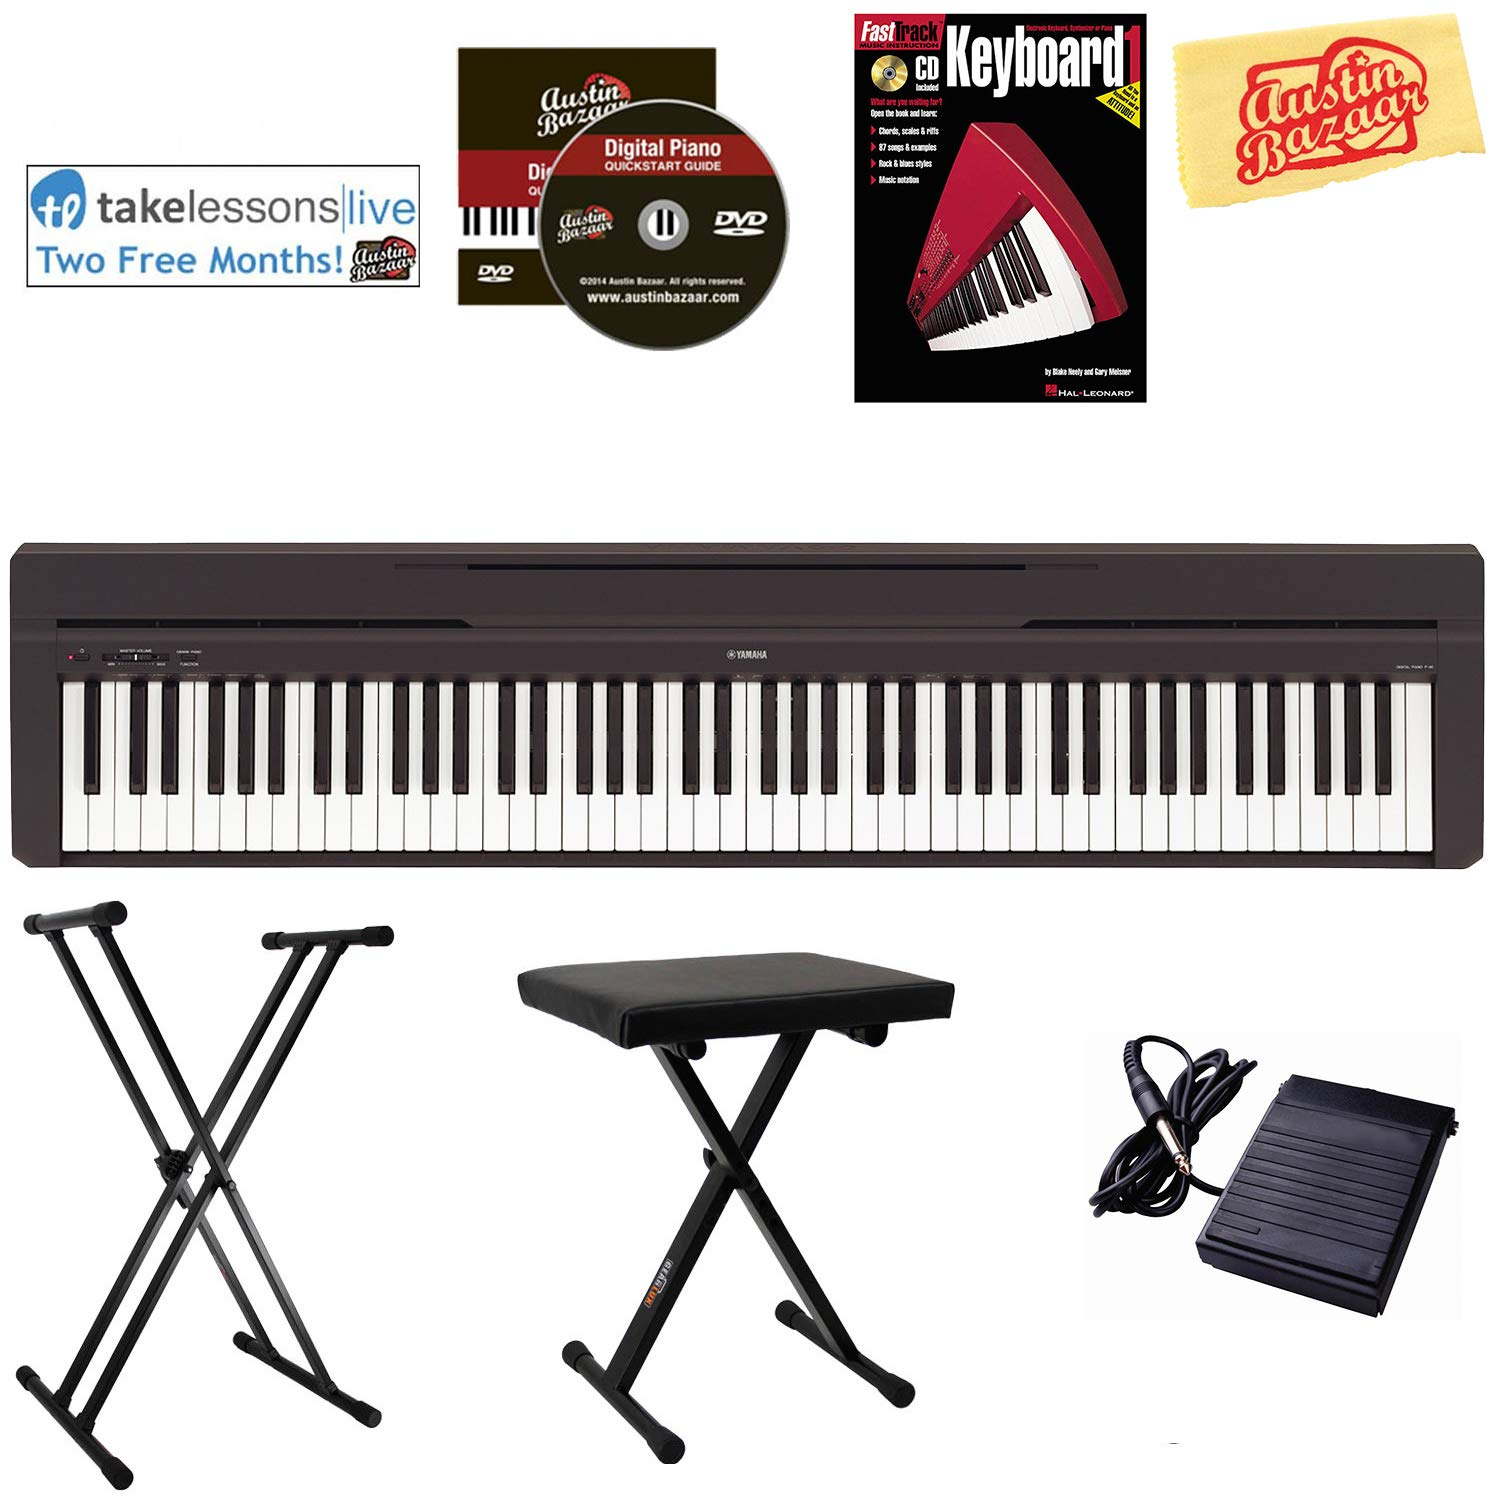 Yamaha P-45 Digital Piano - Black Bundle with Adjustable Stand, Bench, Instructional Book, Austin Bazaar Instructional DVD, Online Lessons, and Polishing Cloth by YAMAHA